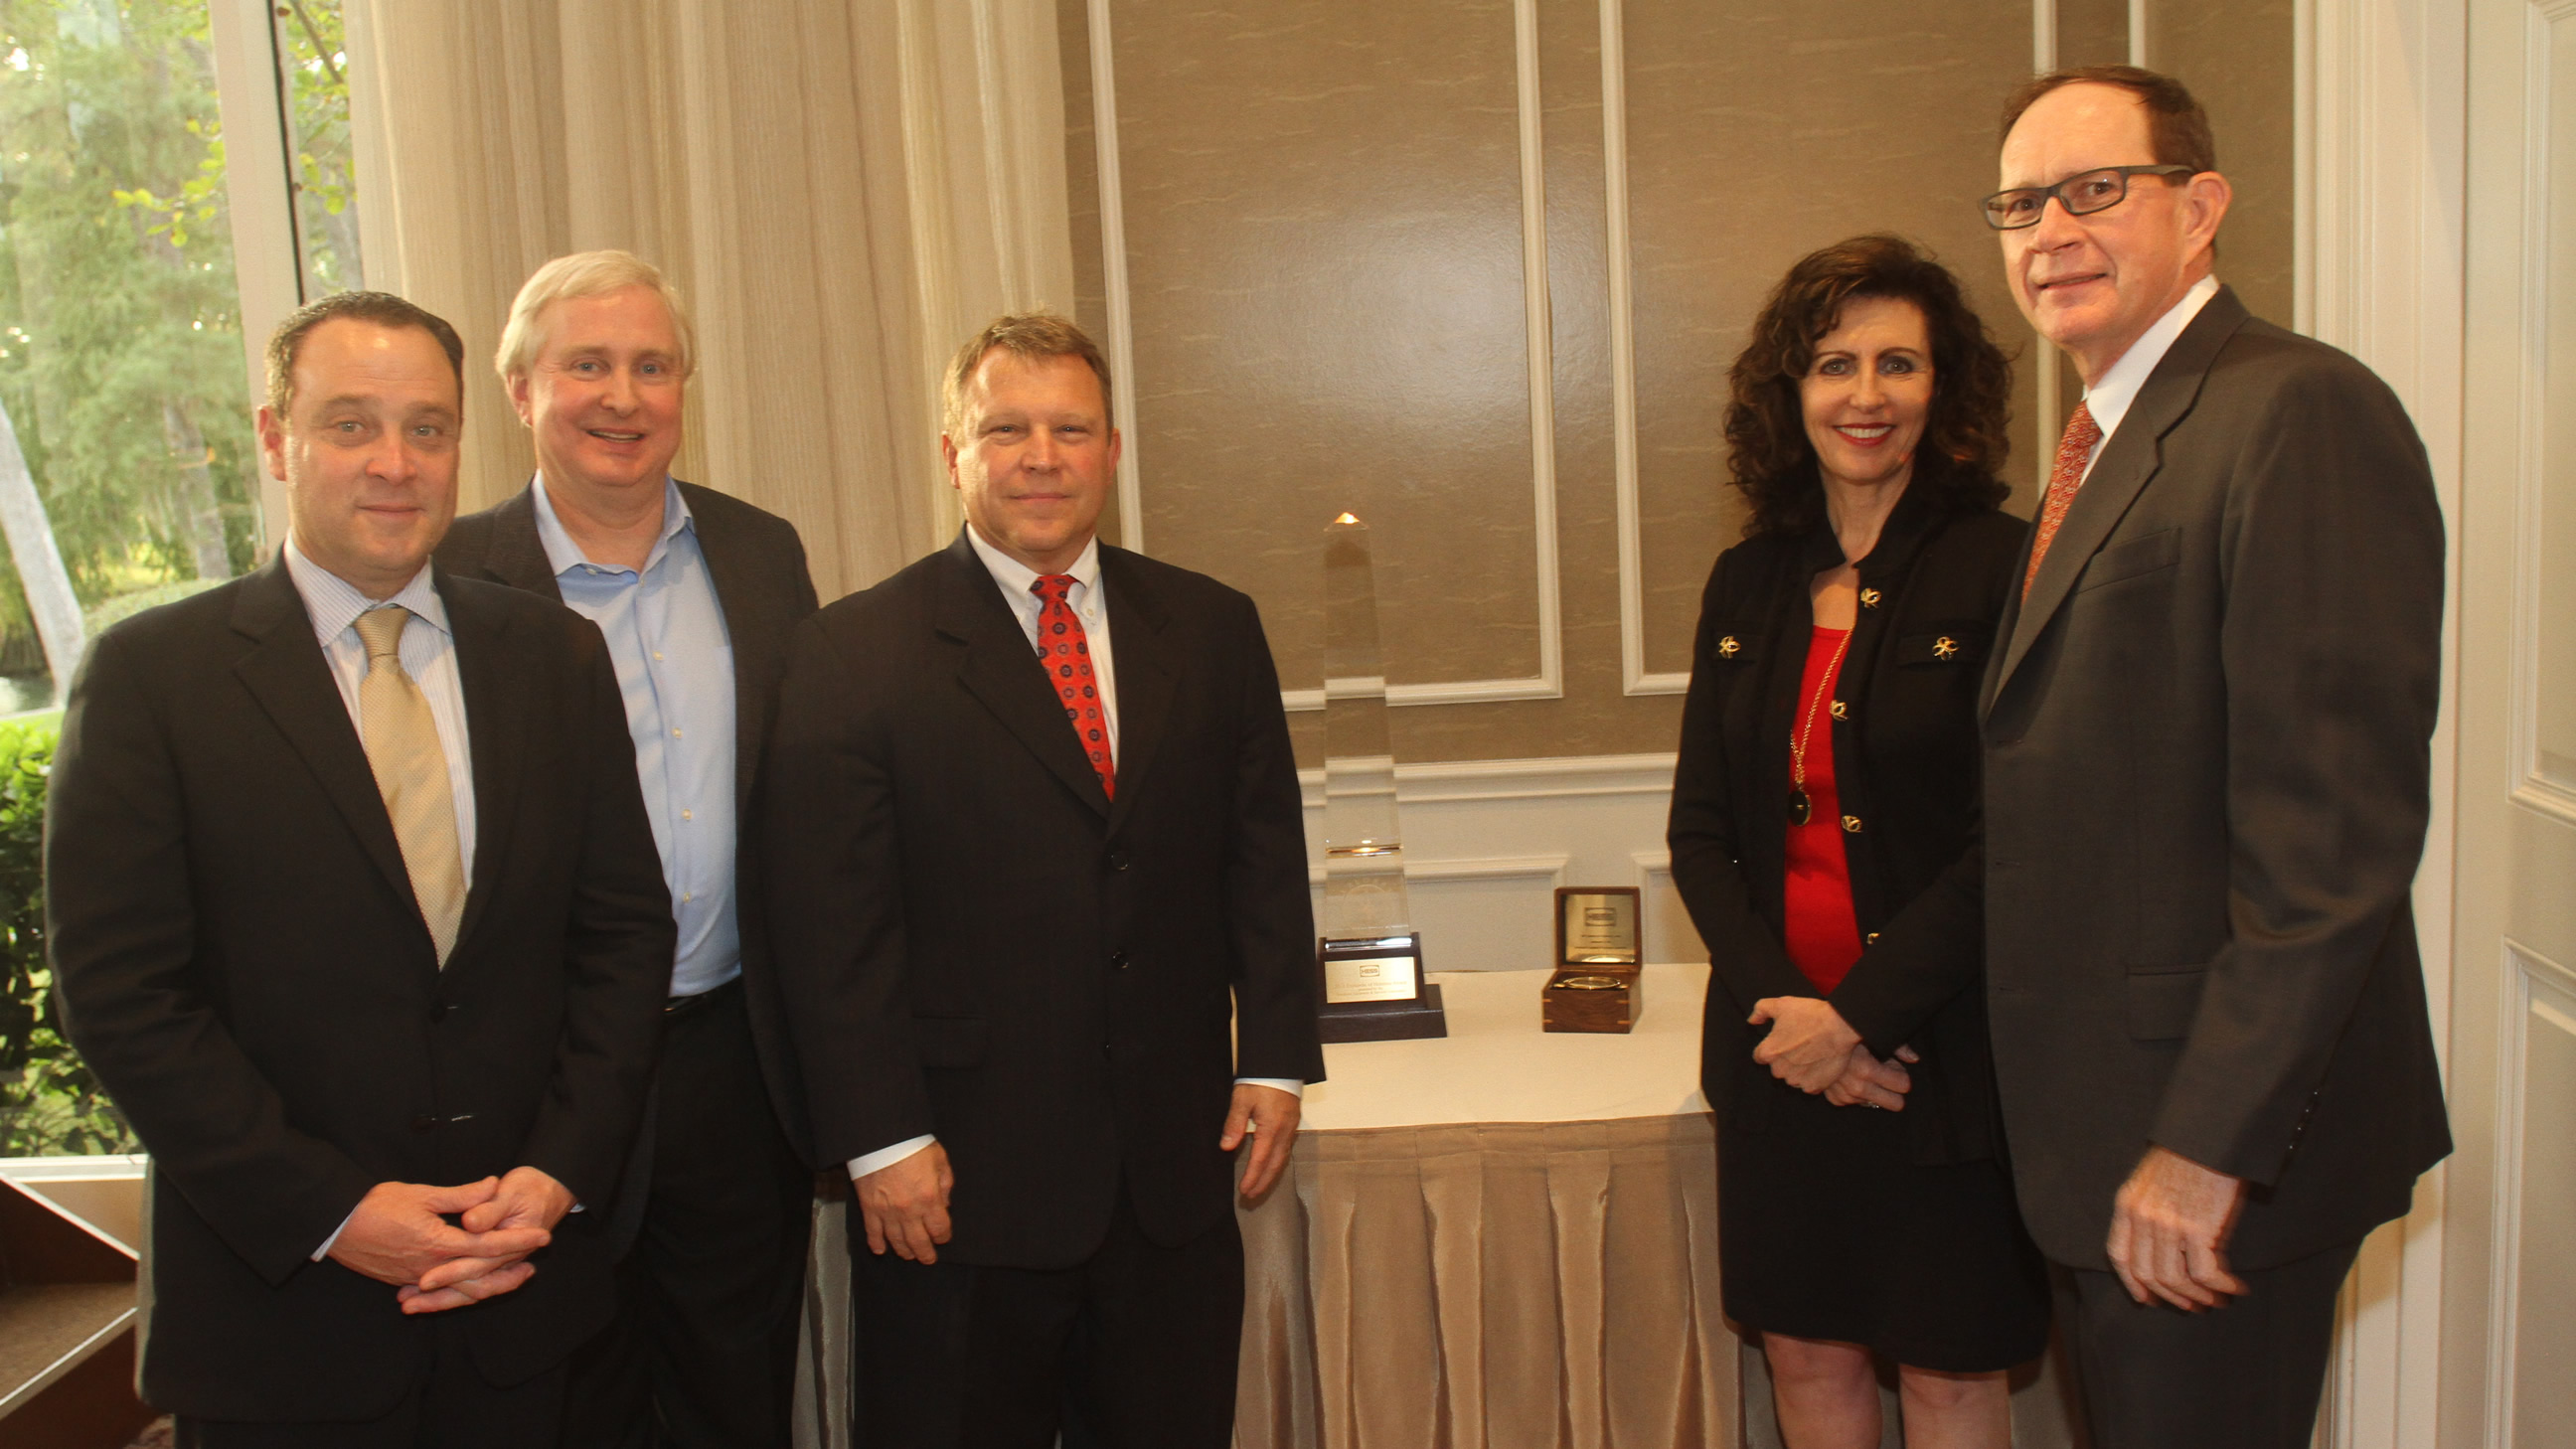 Hess Corporation received the 2015 Explorers of Houston Award for Leadership & Innovation